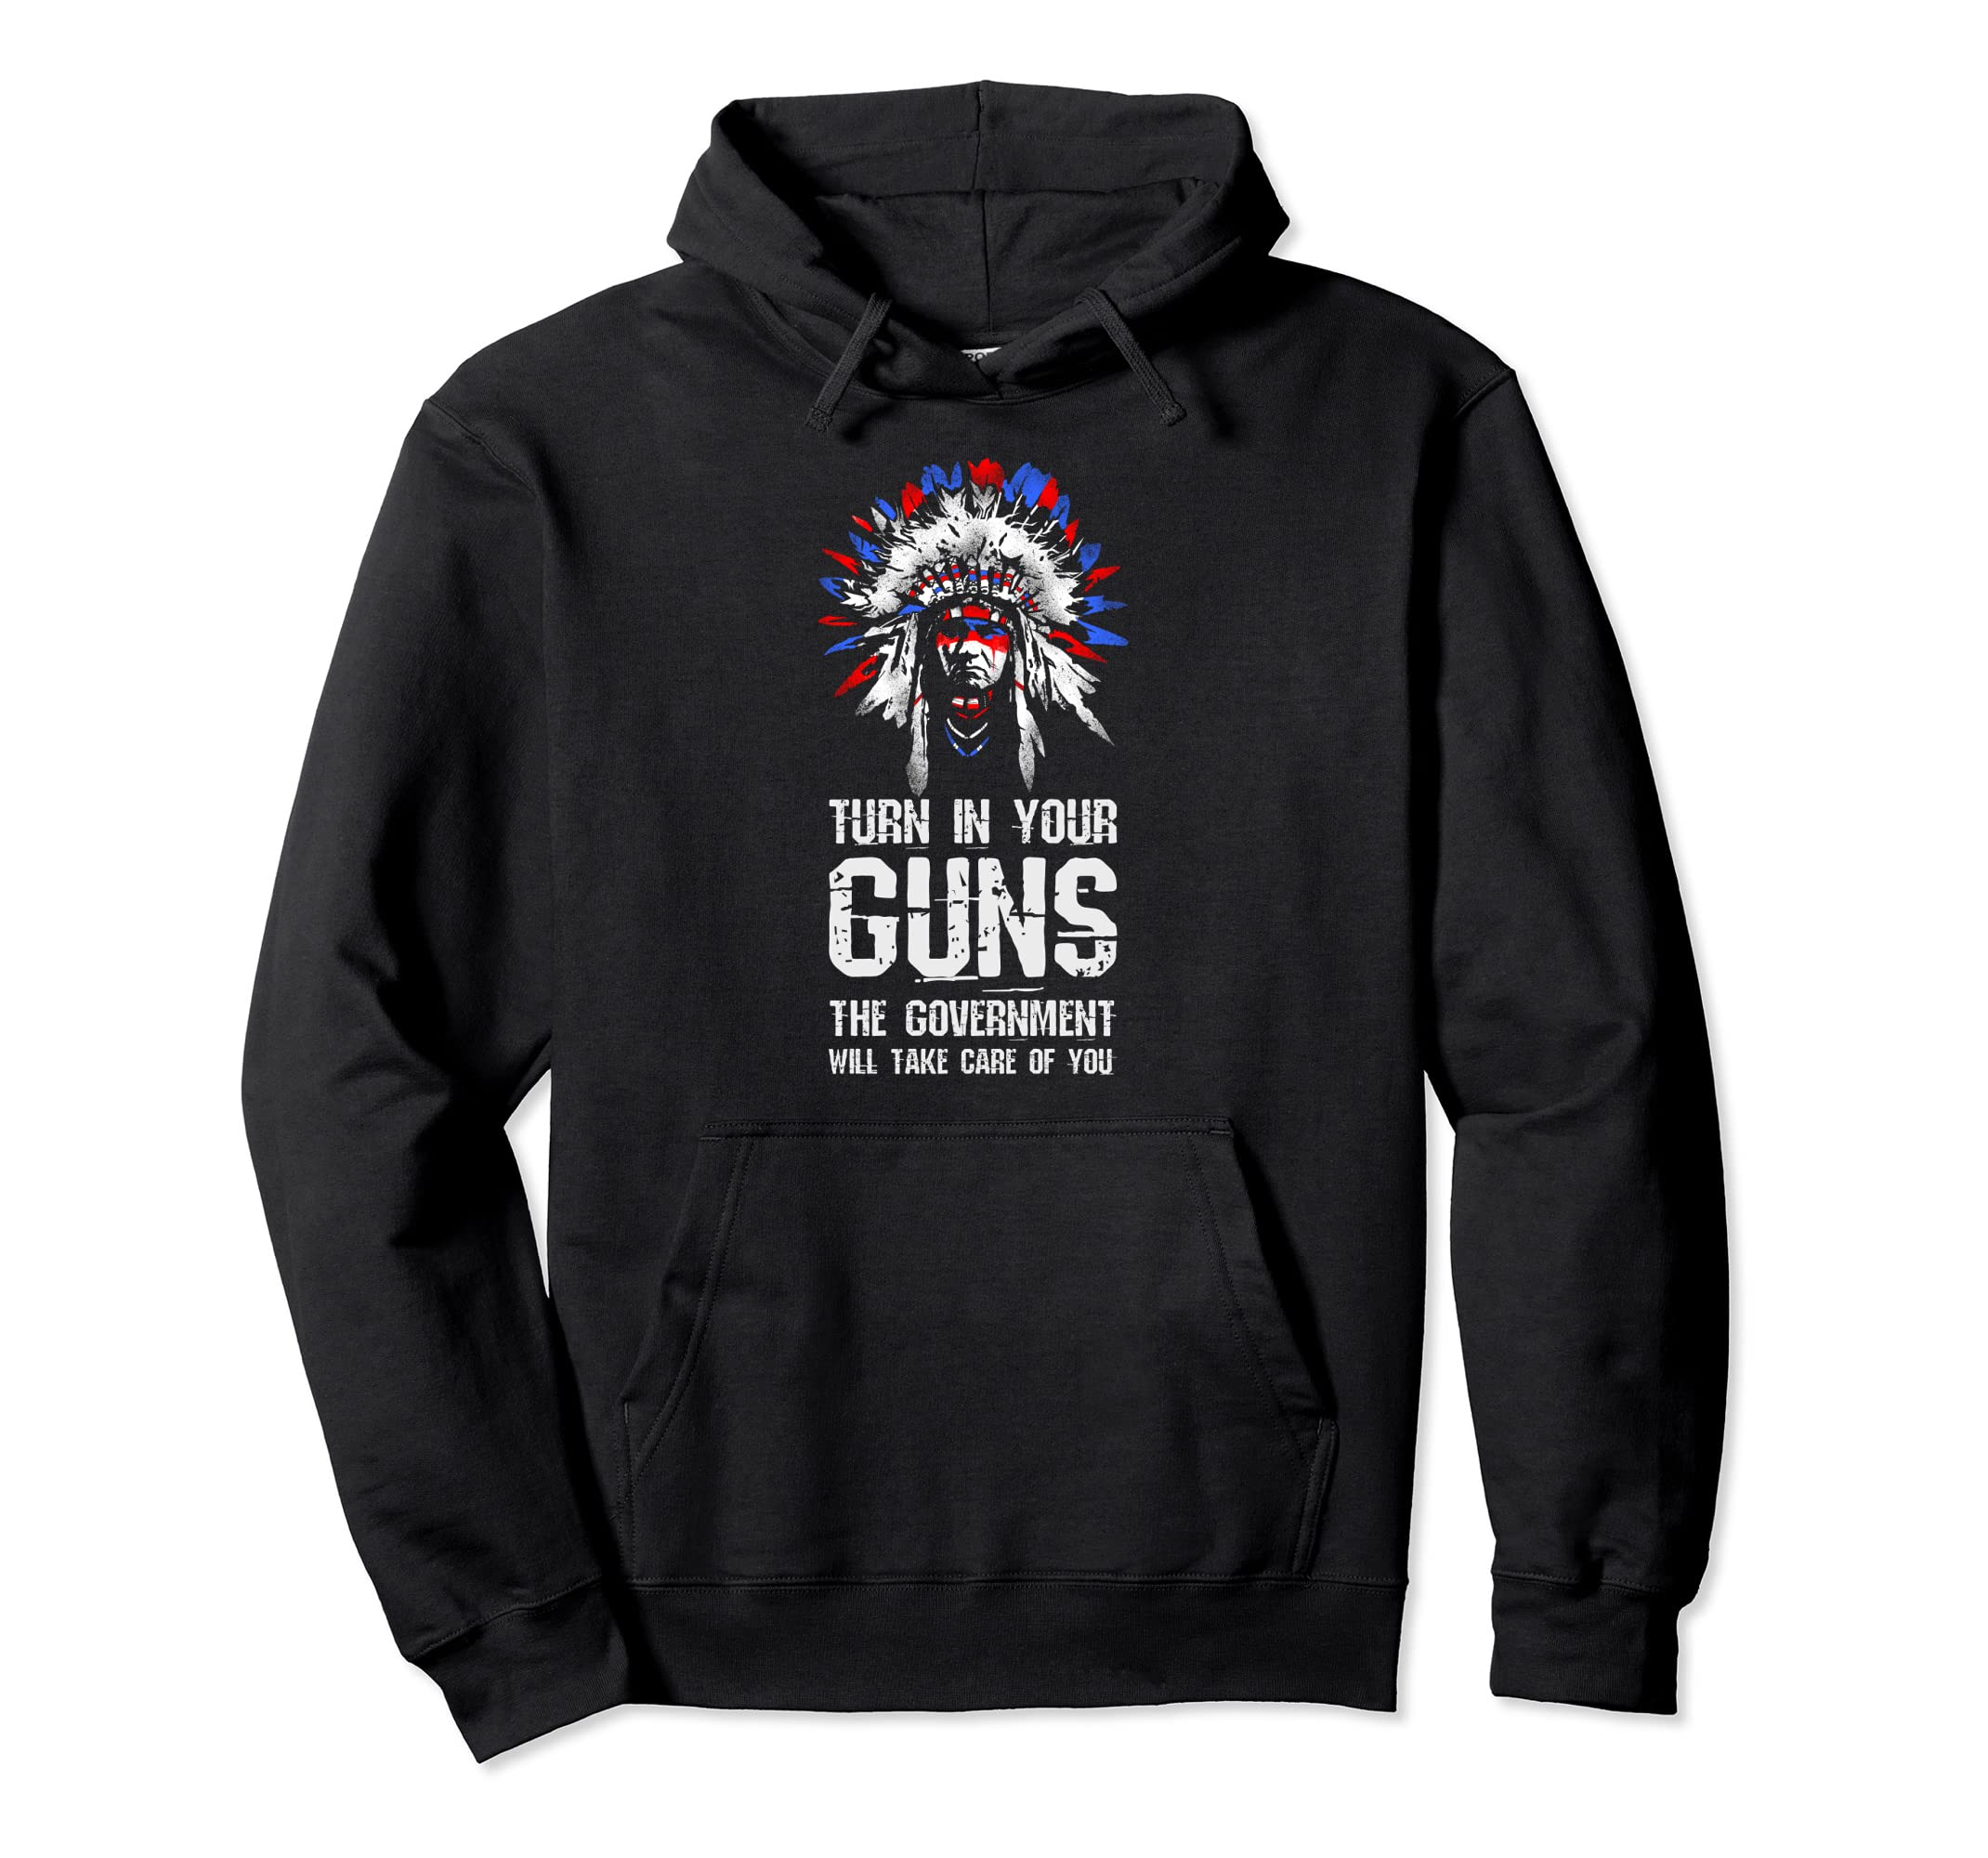 Gun Rights Hoodie Turn In Your Guns Funny Political Gift